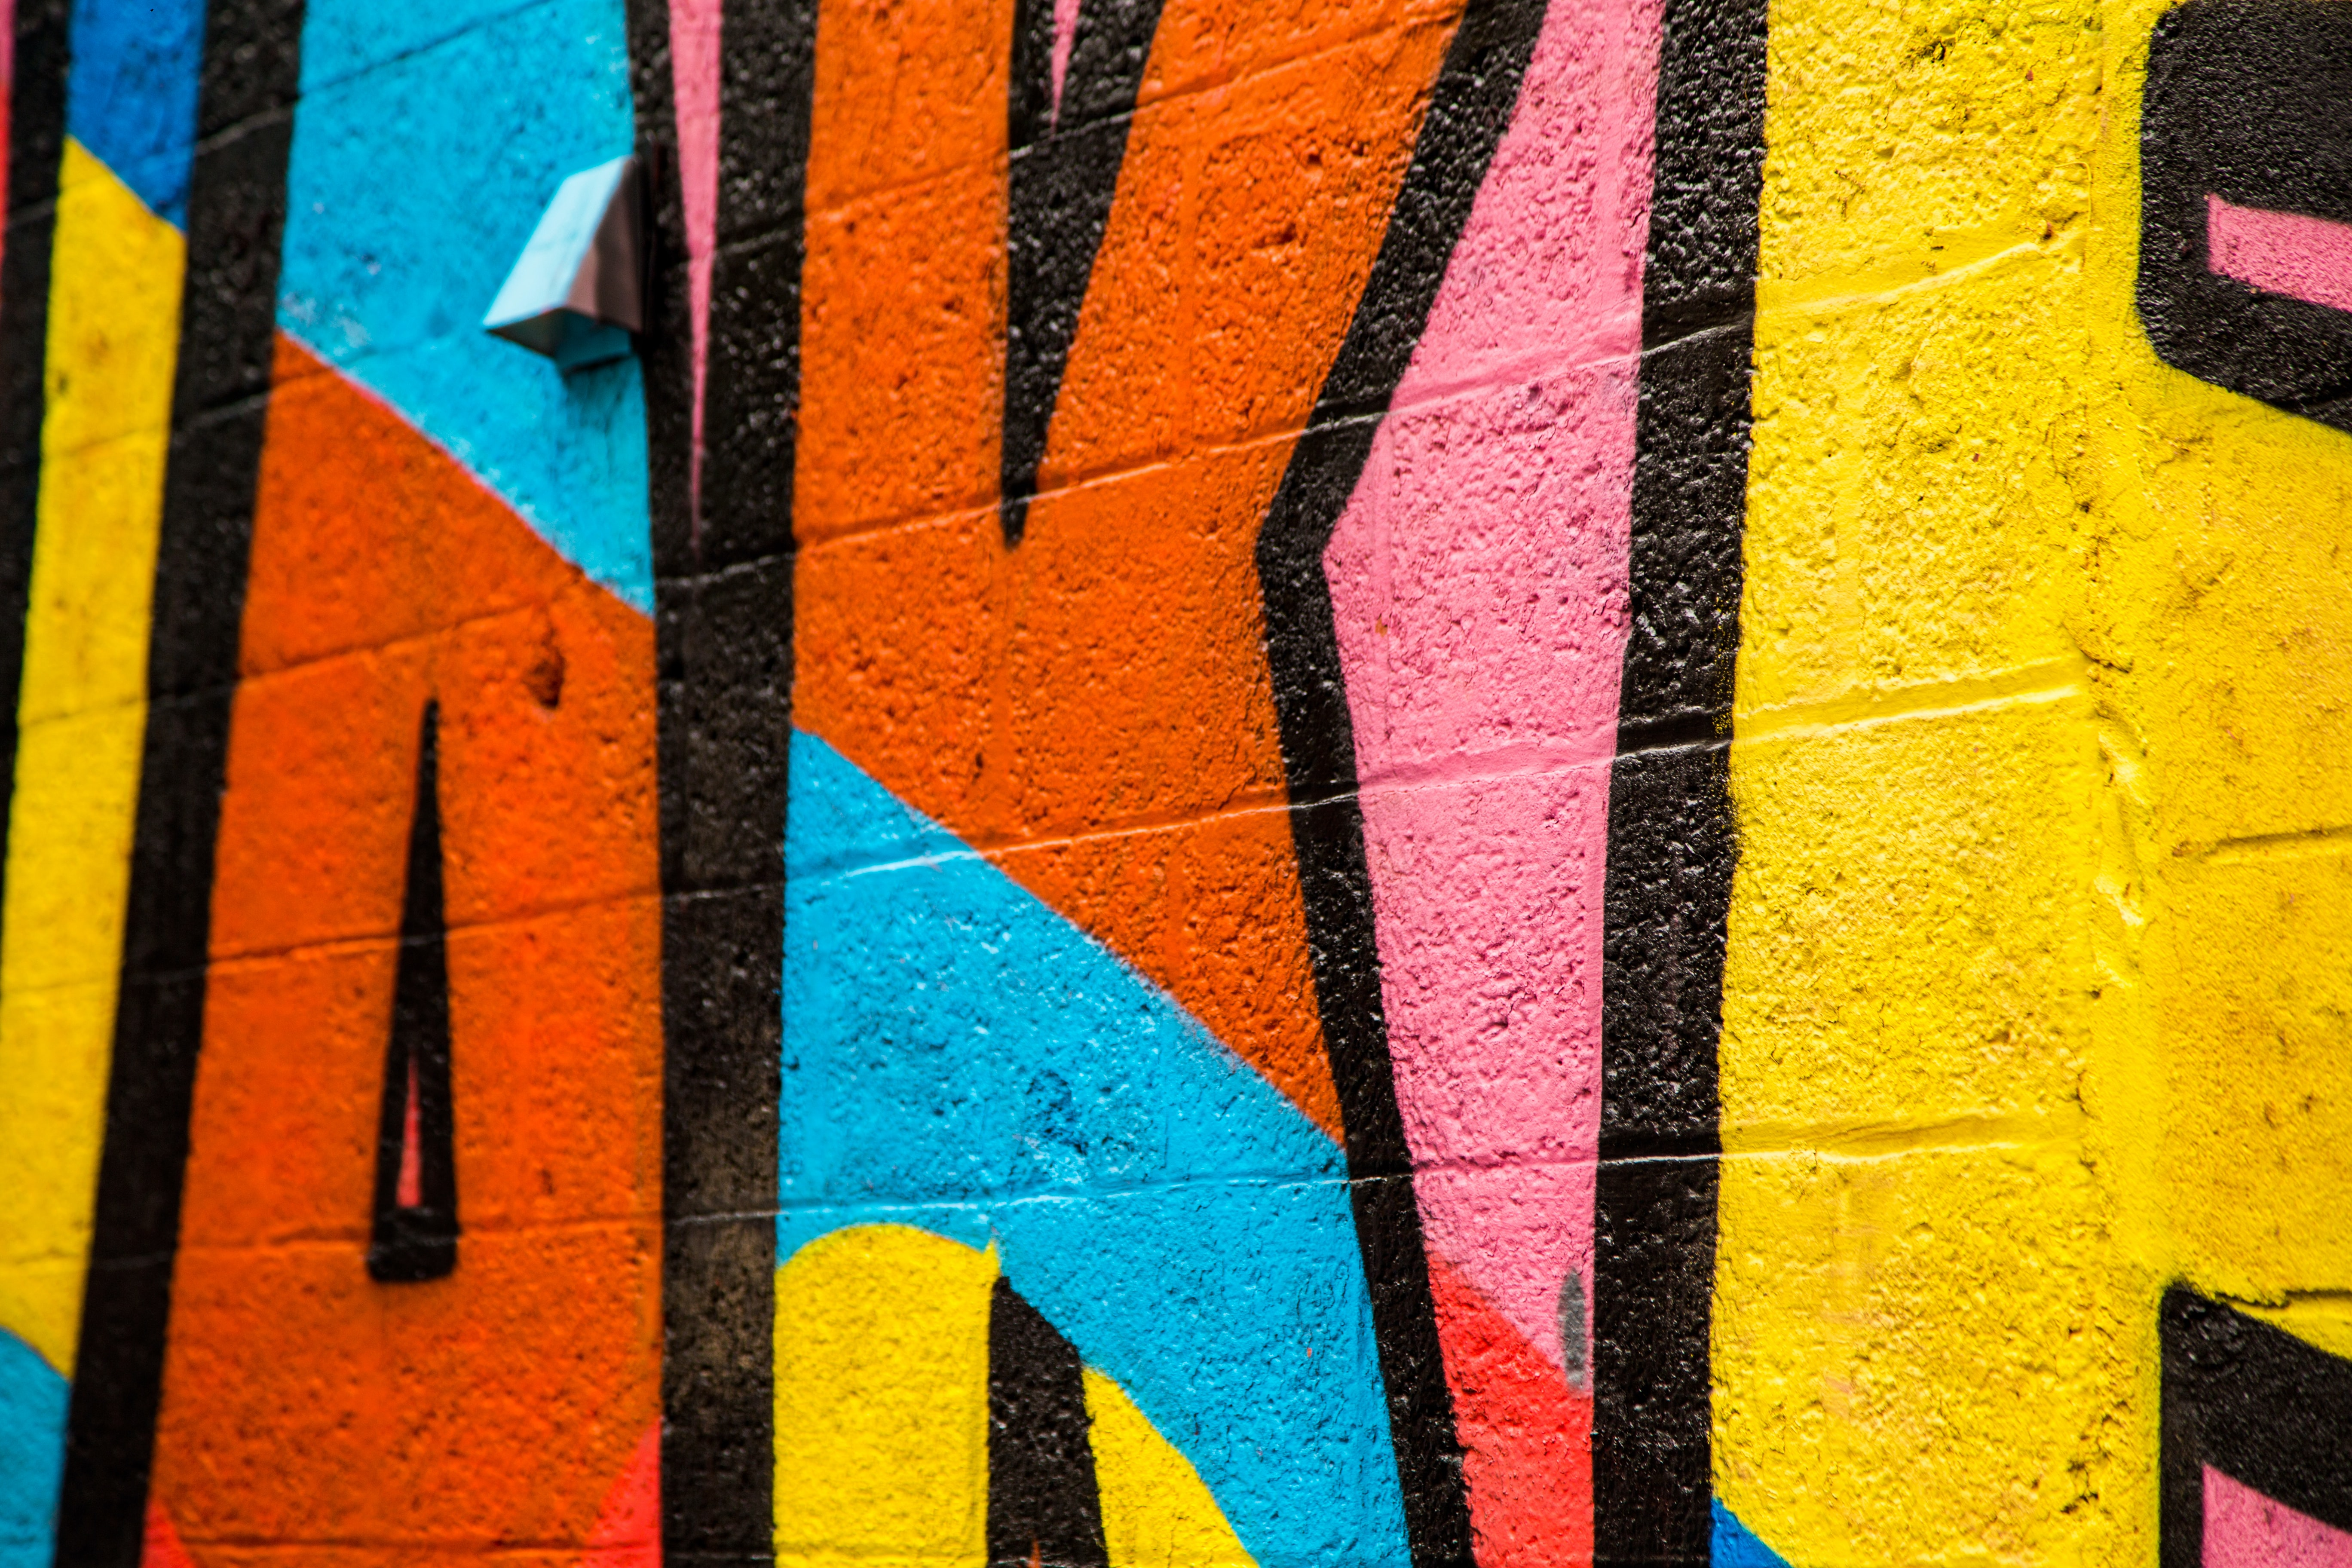 Hard to read colorful graffiti letters viewed up close.